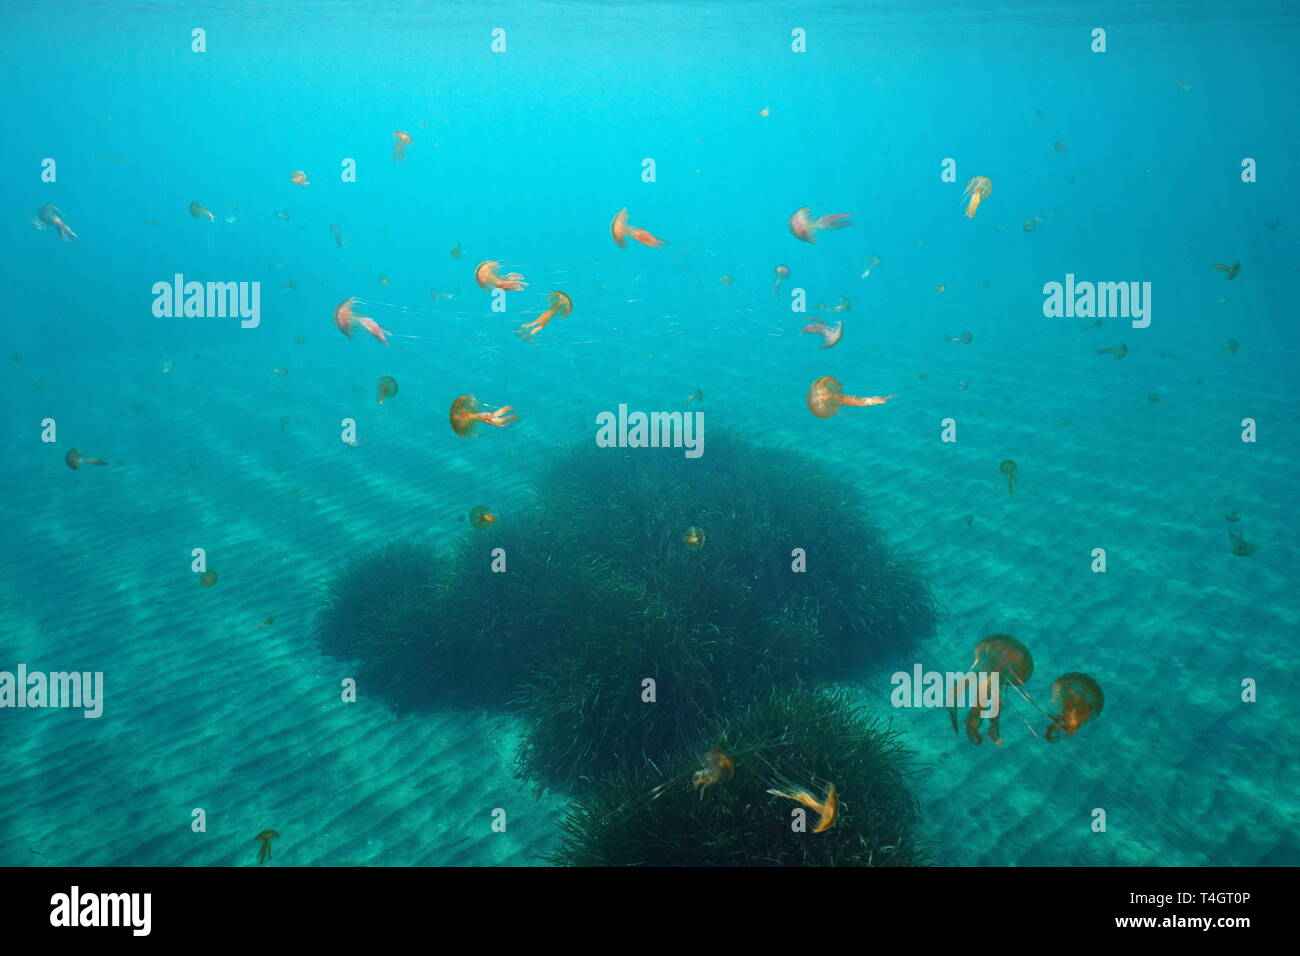 Many jellyfish underwater in Mediterranean sea, mauve stinger Pelagia noctiluca, Spain - Stock Image